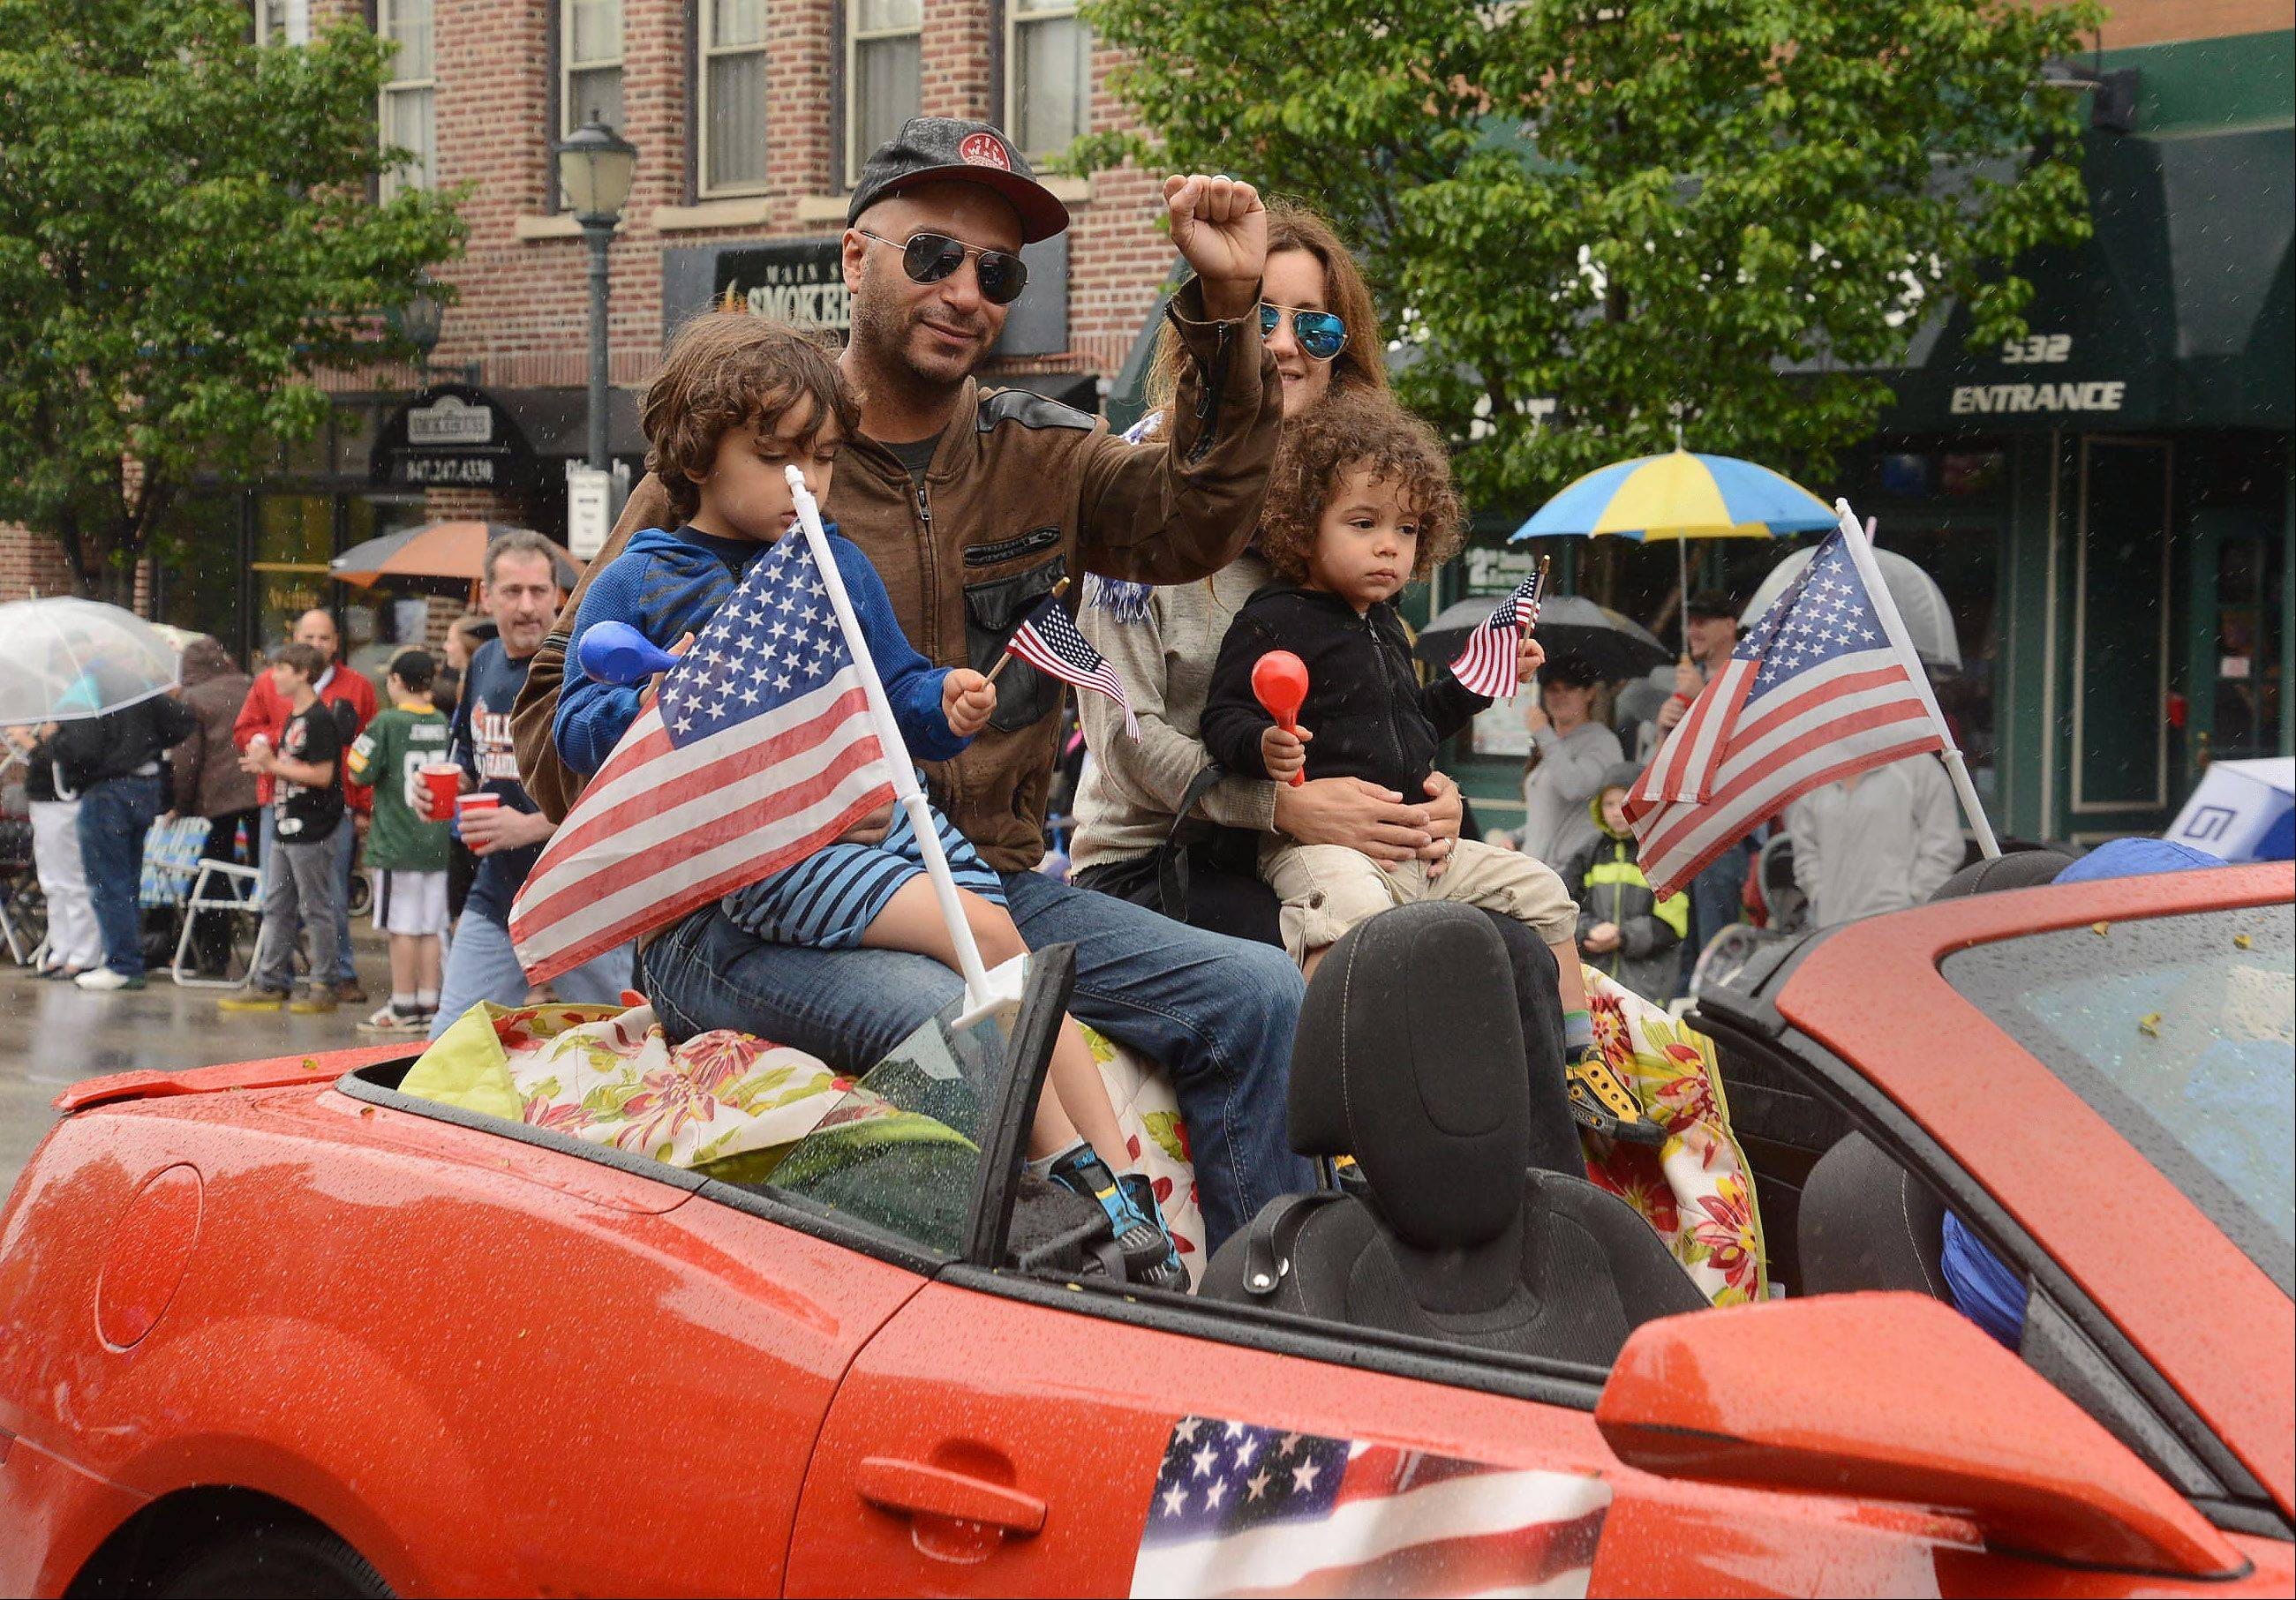 Grand Marshal Tom Morello and his family wave to the crowd during Saturday's Libertyville Days Parade.